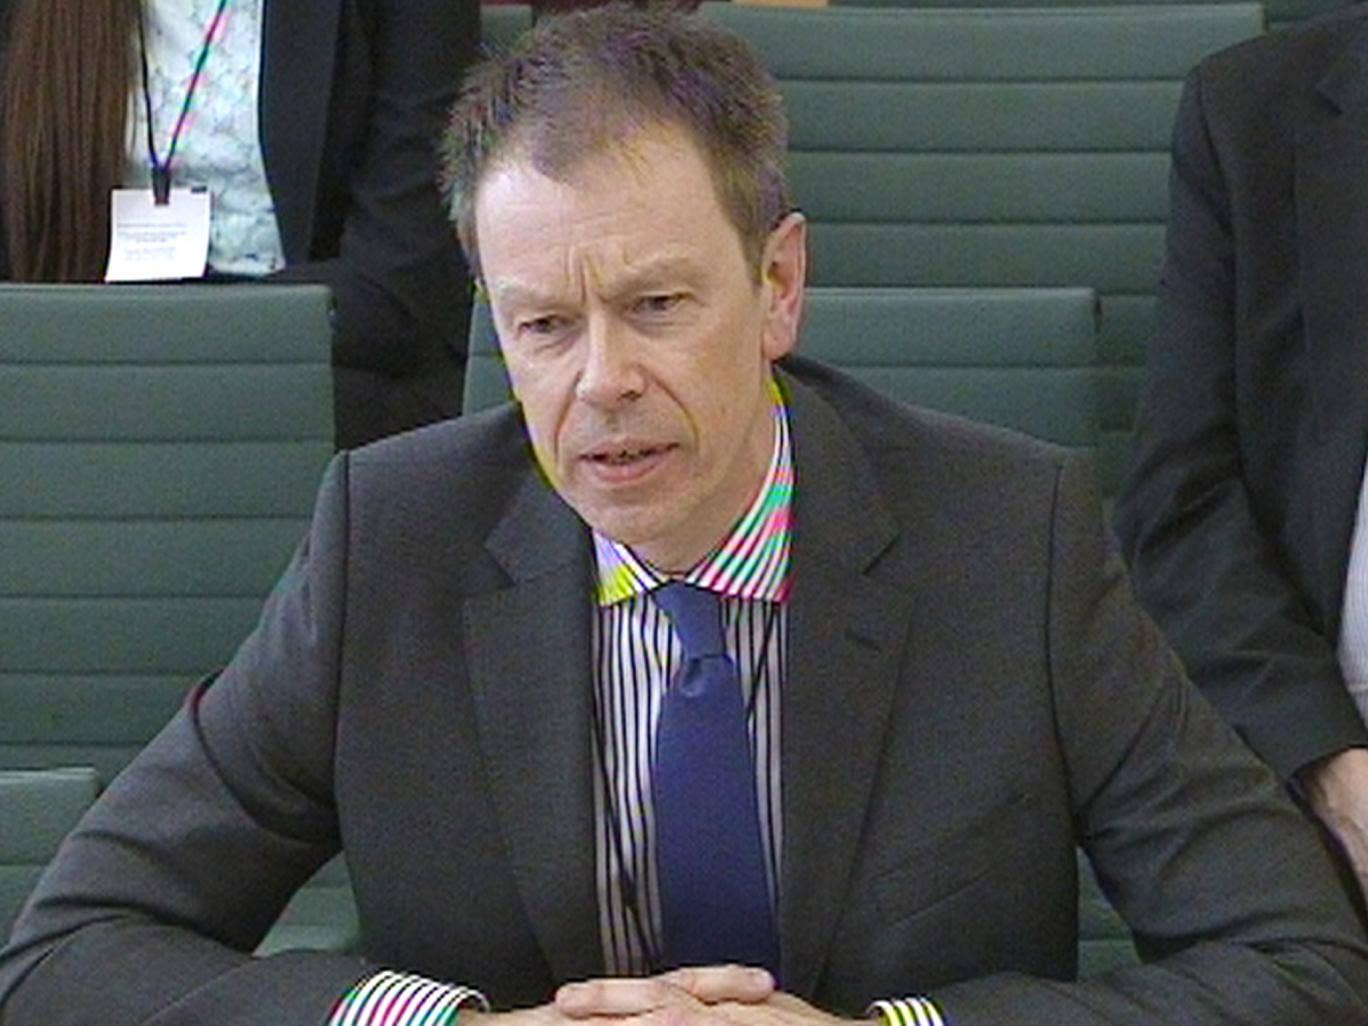 The head of the Passport Office, Paul Pugh gives evidence to Commons Home Affairs Committee